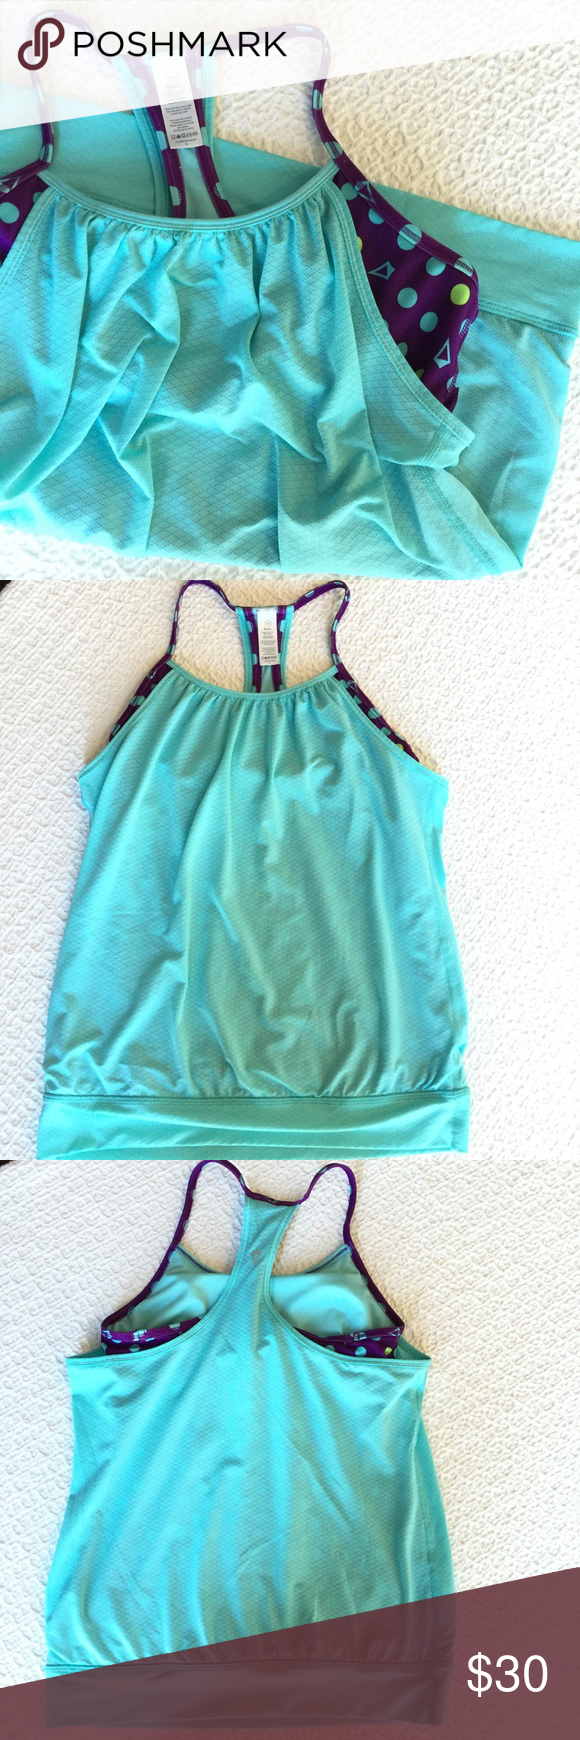 Ivivva Size 14 Double Dutch Tank Top In great condition!   { FYI, I'm trying to clear some space in my closet, so I'm not interested in trading :) Thanks! } lululemon athletica Tops Tank Tops